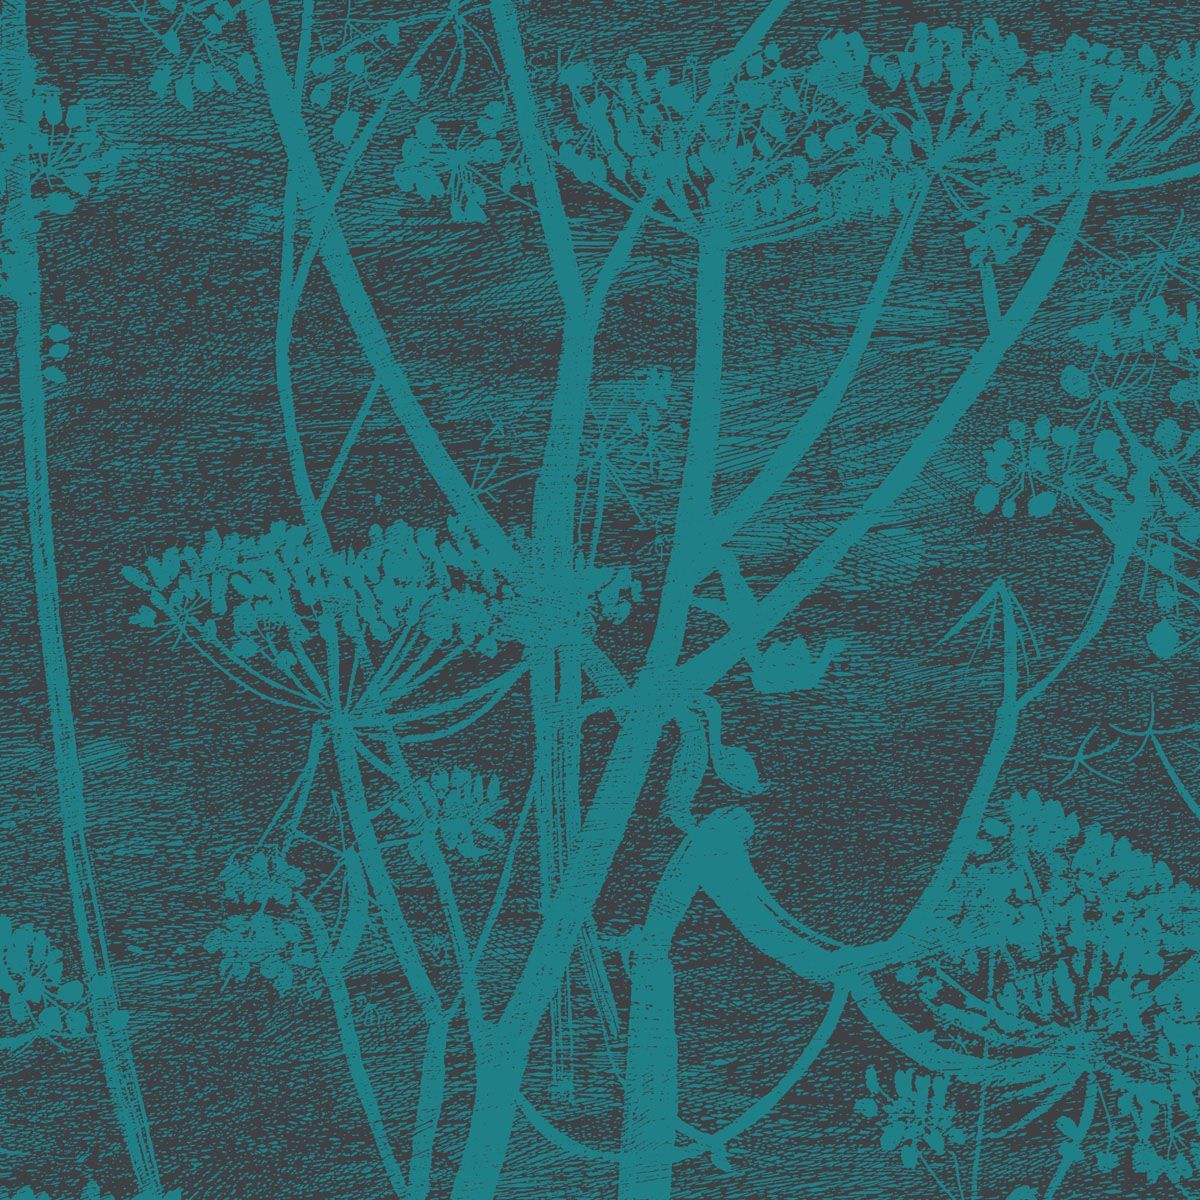 Hallway wallpaper or paint  Cow Parsley Wallpaper  Ideas for the House  Pinterest  Cow